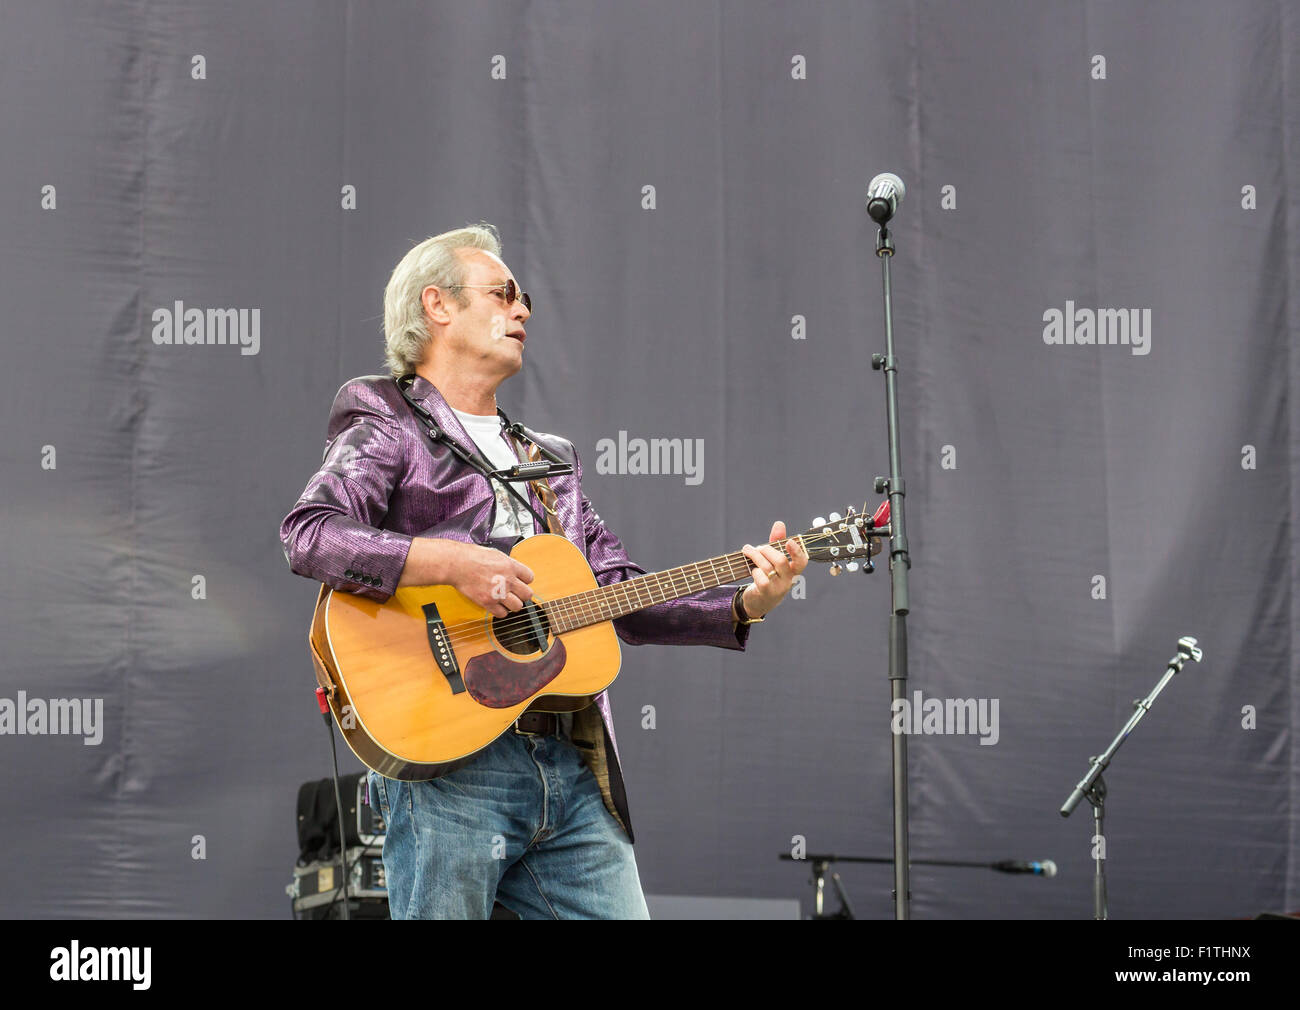 Ewhurst, Surrey, England, UK.  5th September 2015.  Chris Jagger performs, singing live on stage with a guitar at - Stock Image